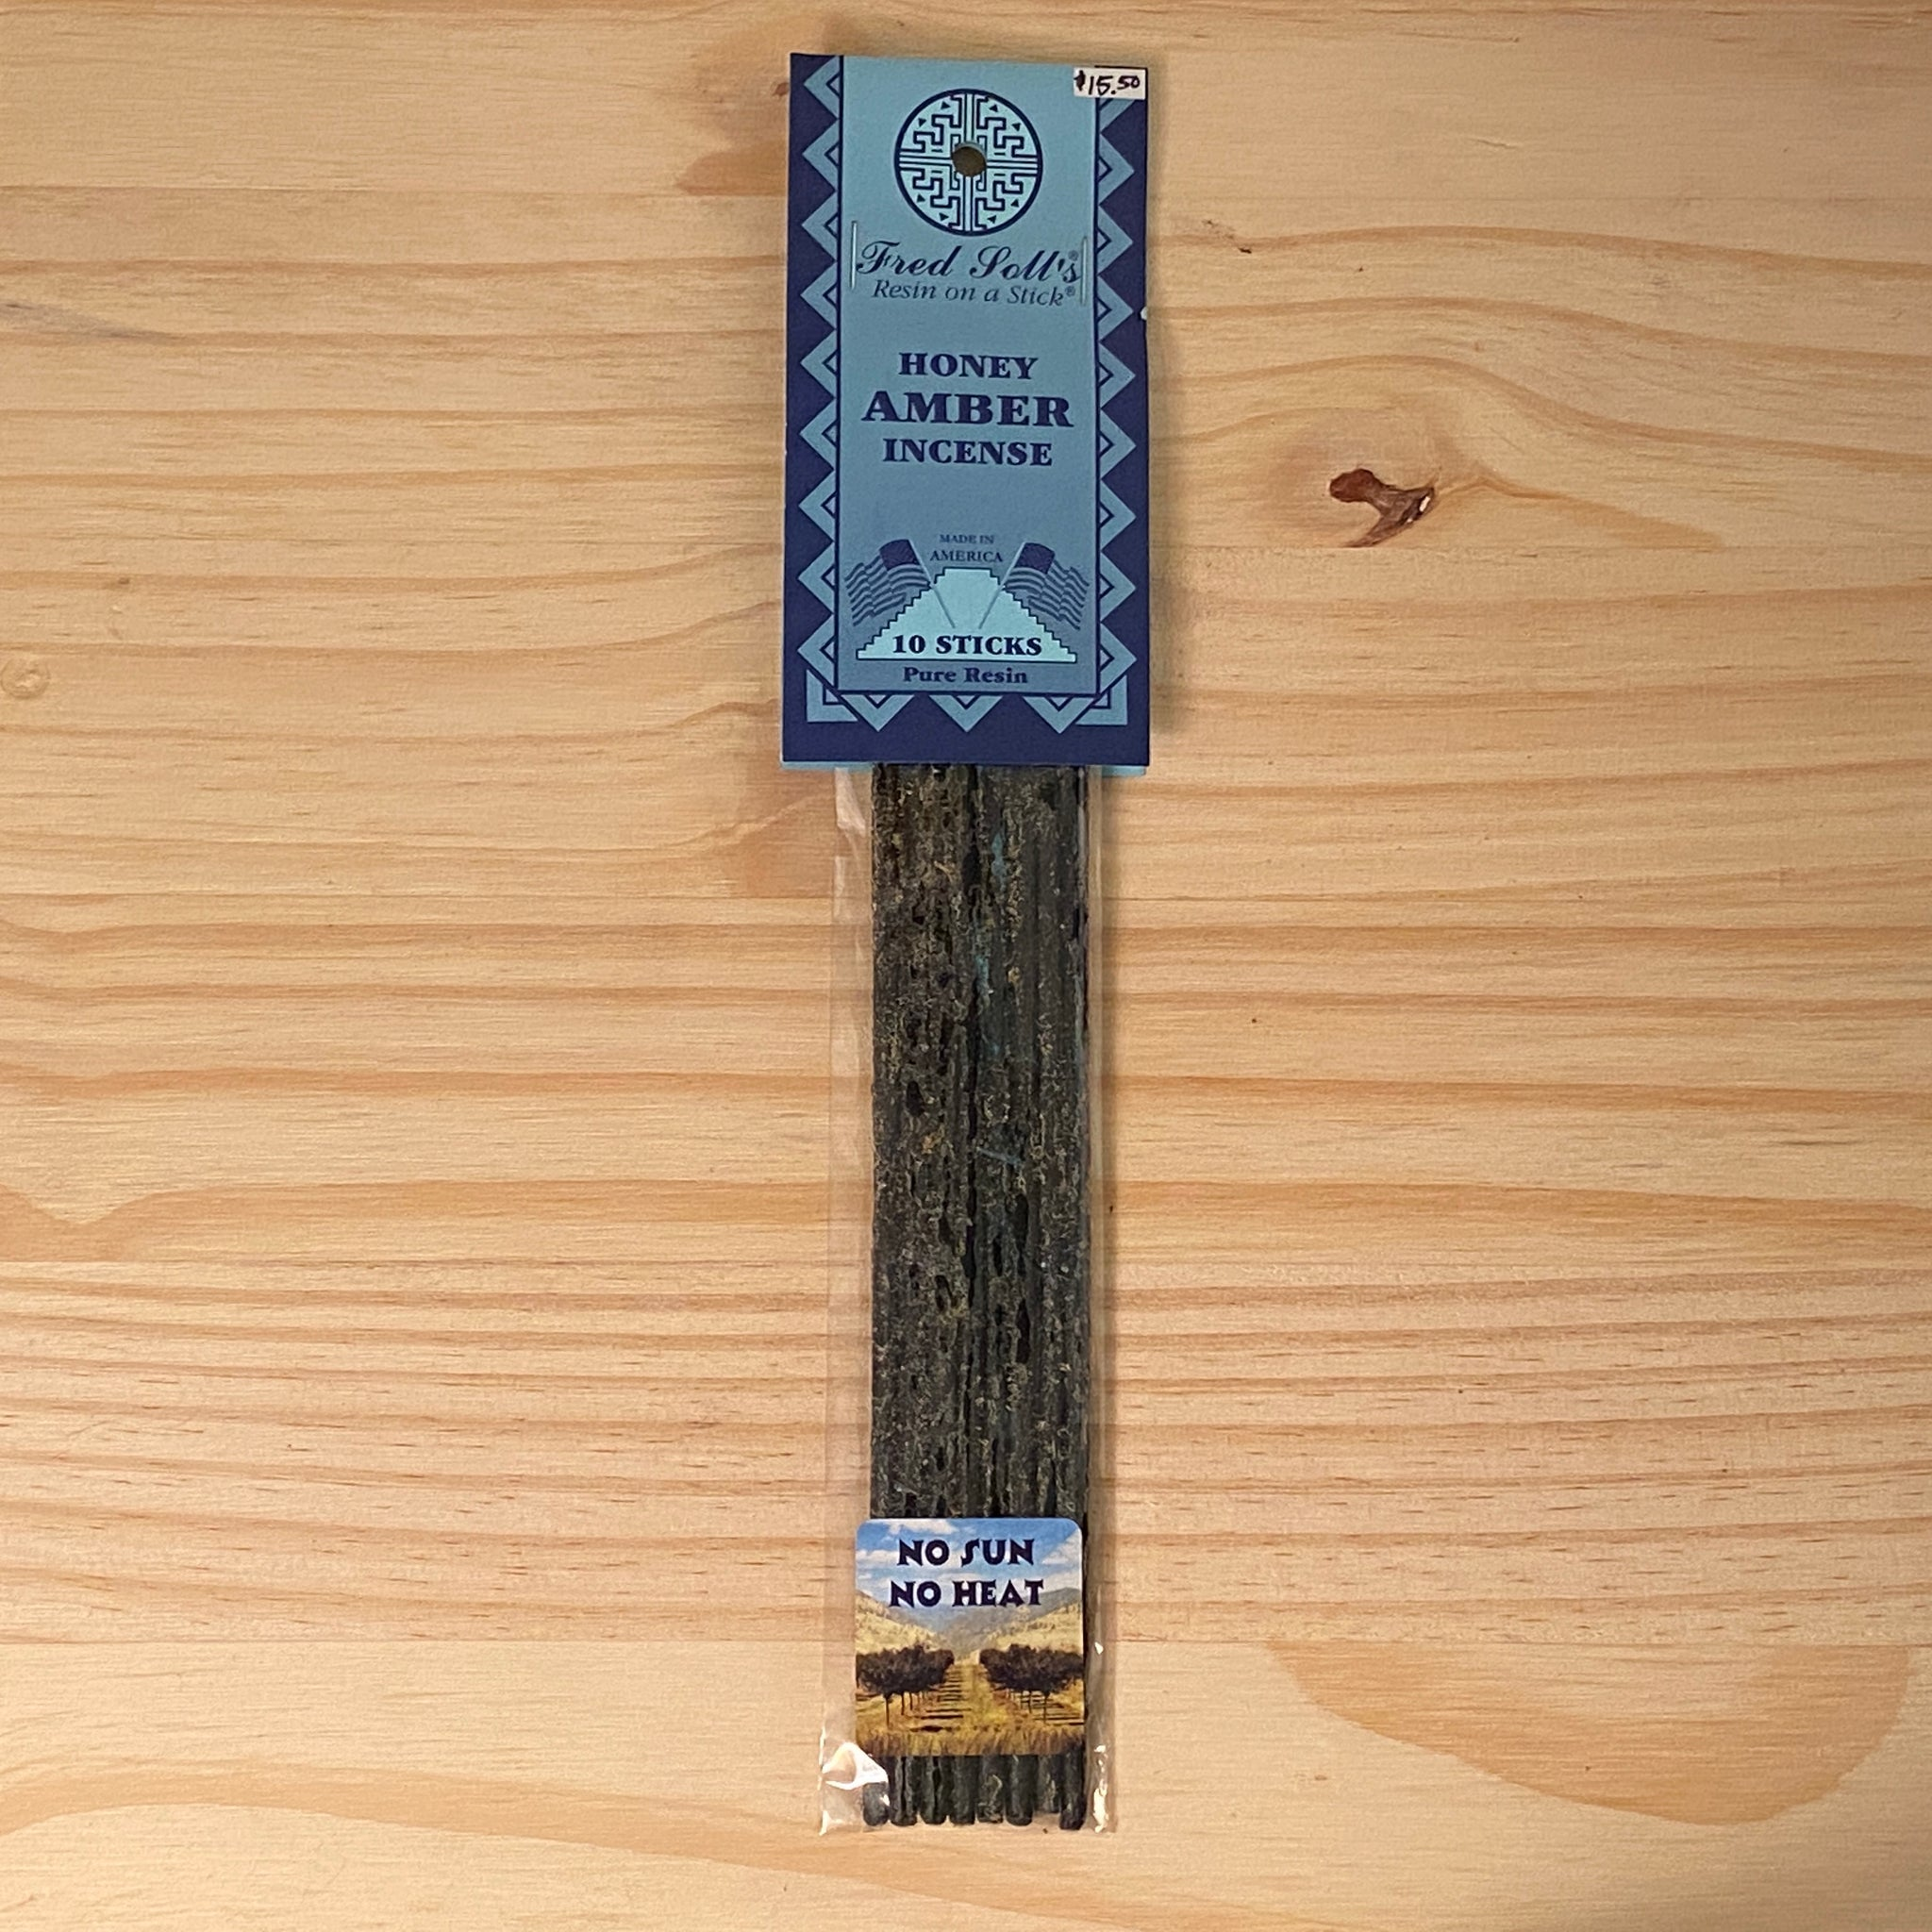 Honey Amber Incense (10 Sticks)